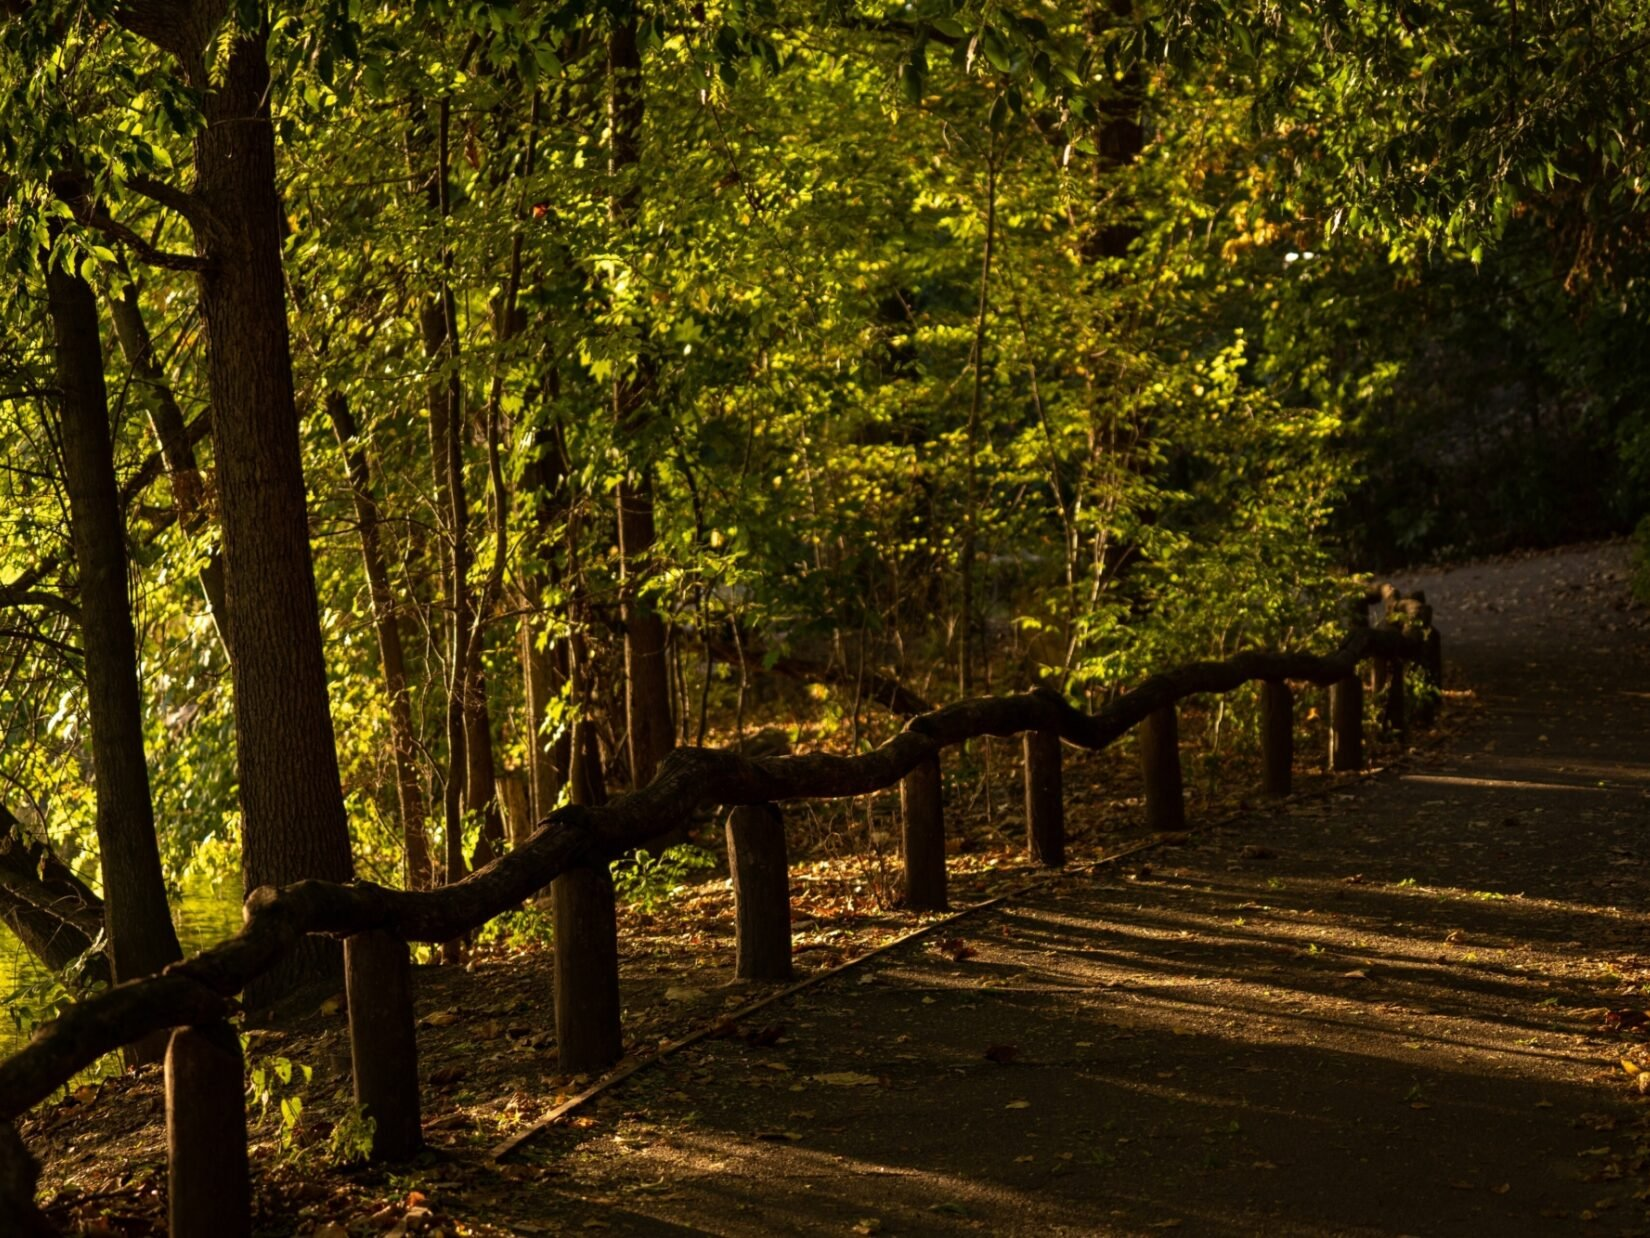 A deeply-shadowed rustic path through the Ramble